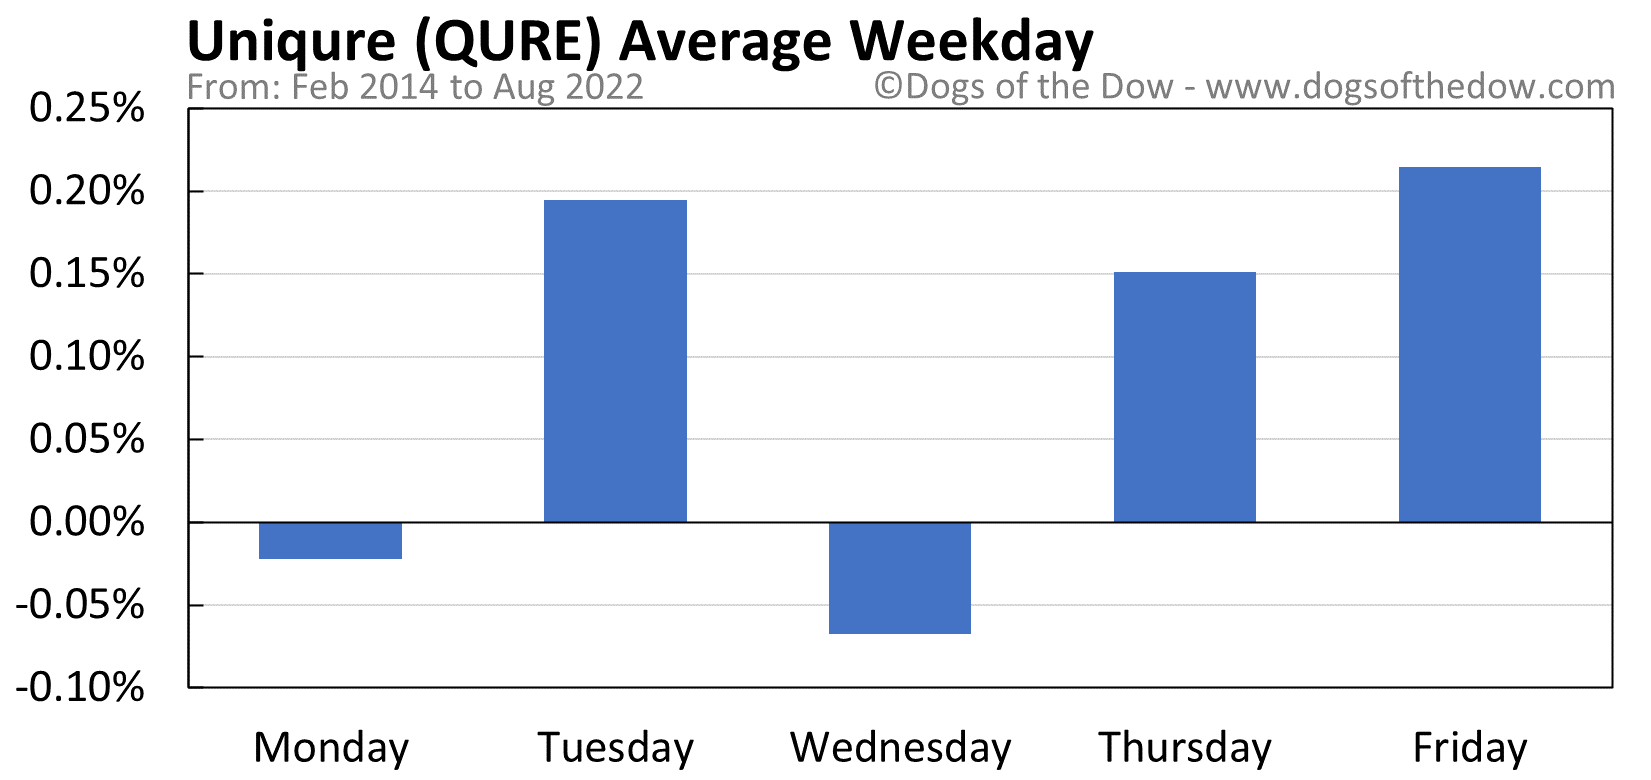 QURE average weekday chart